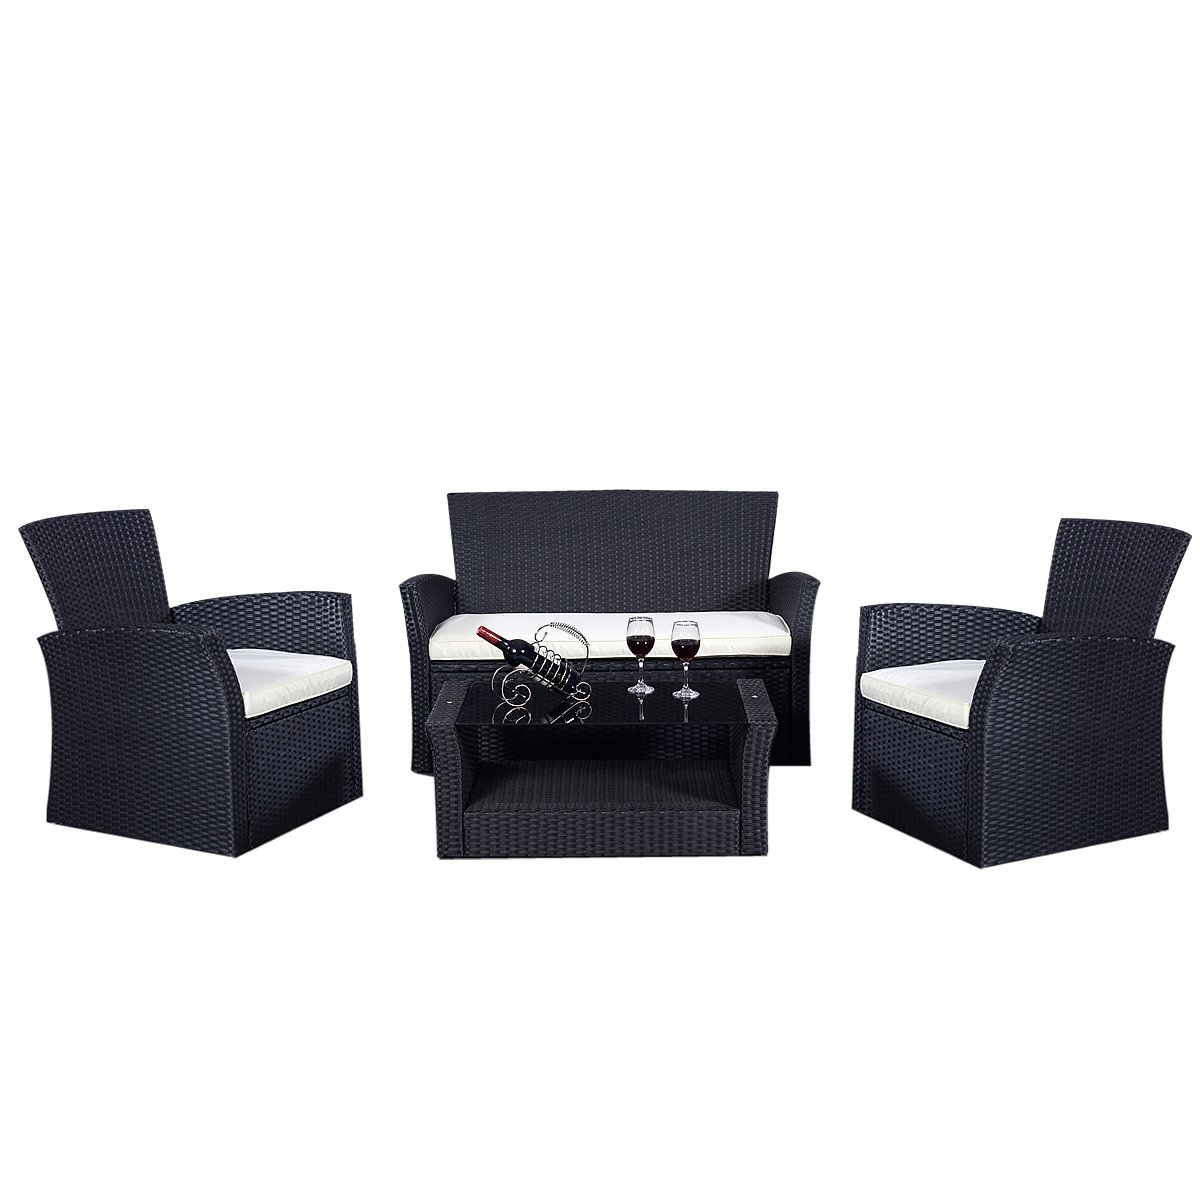 gartenm bel rattan lounge set polyrattan sitzgruppe. Black Bedroom Furniture Sets. Home Design Ideas